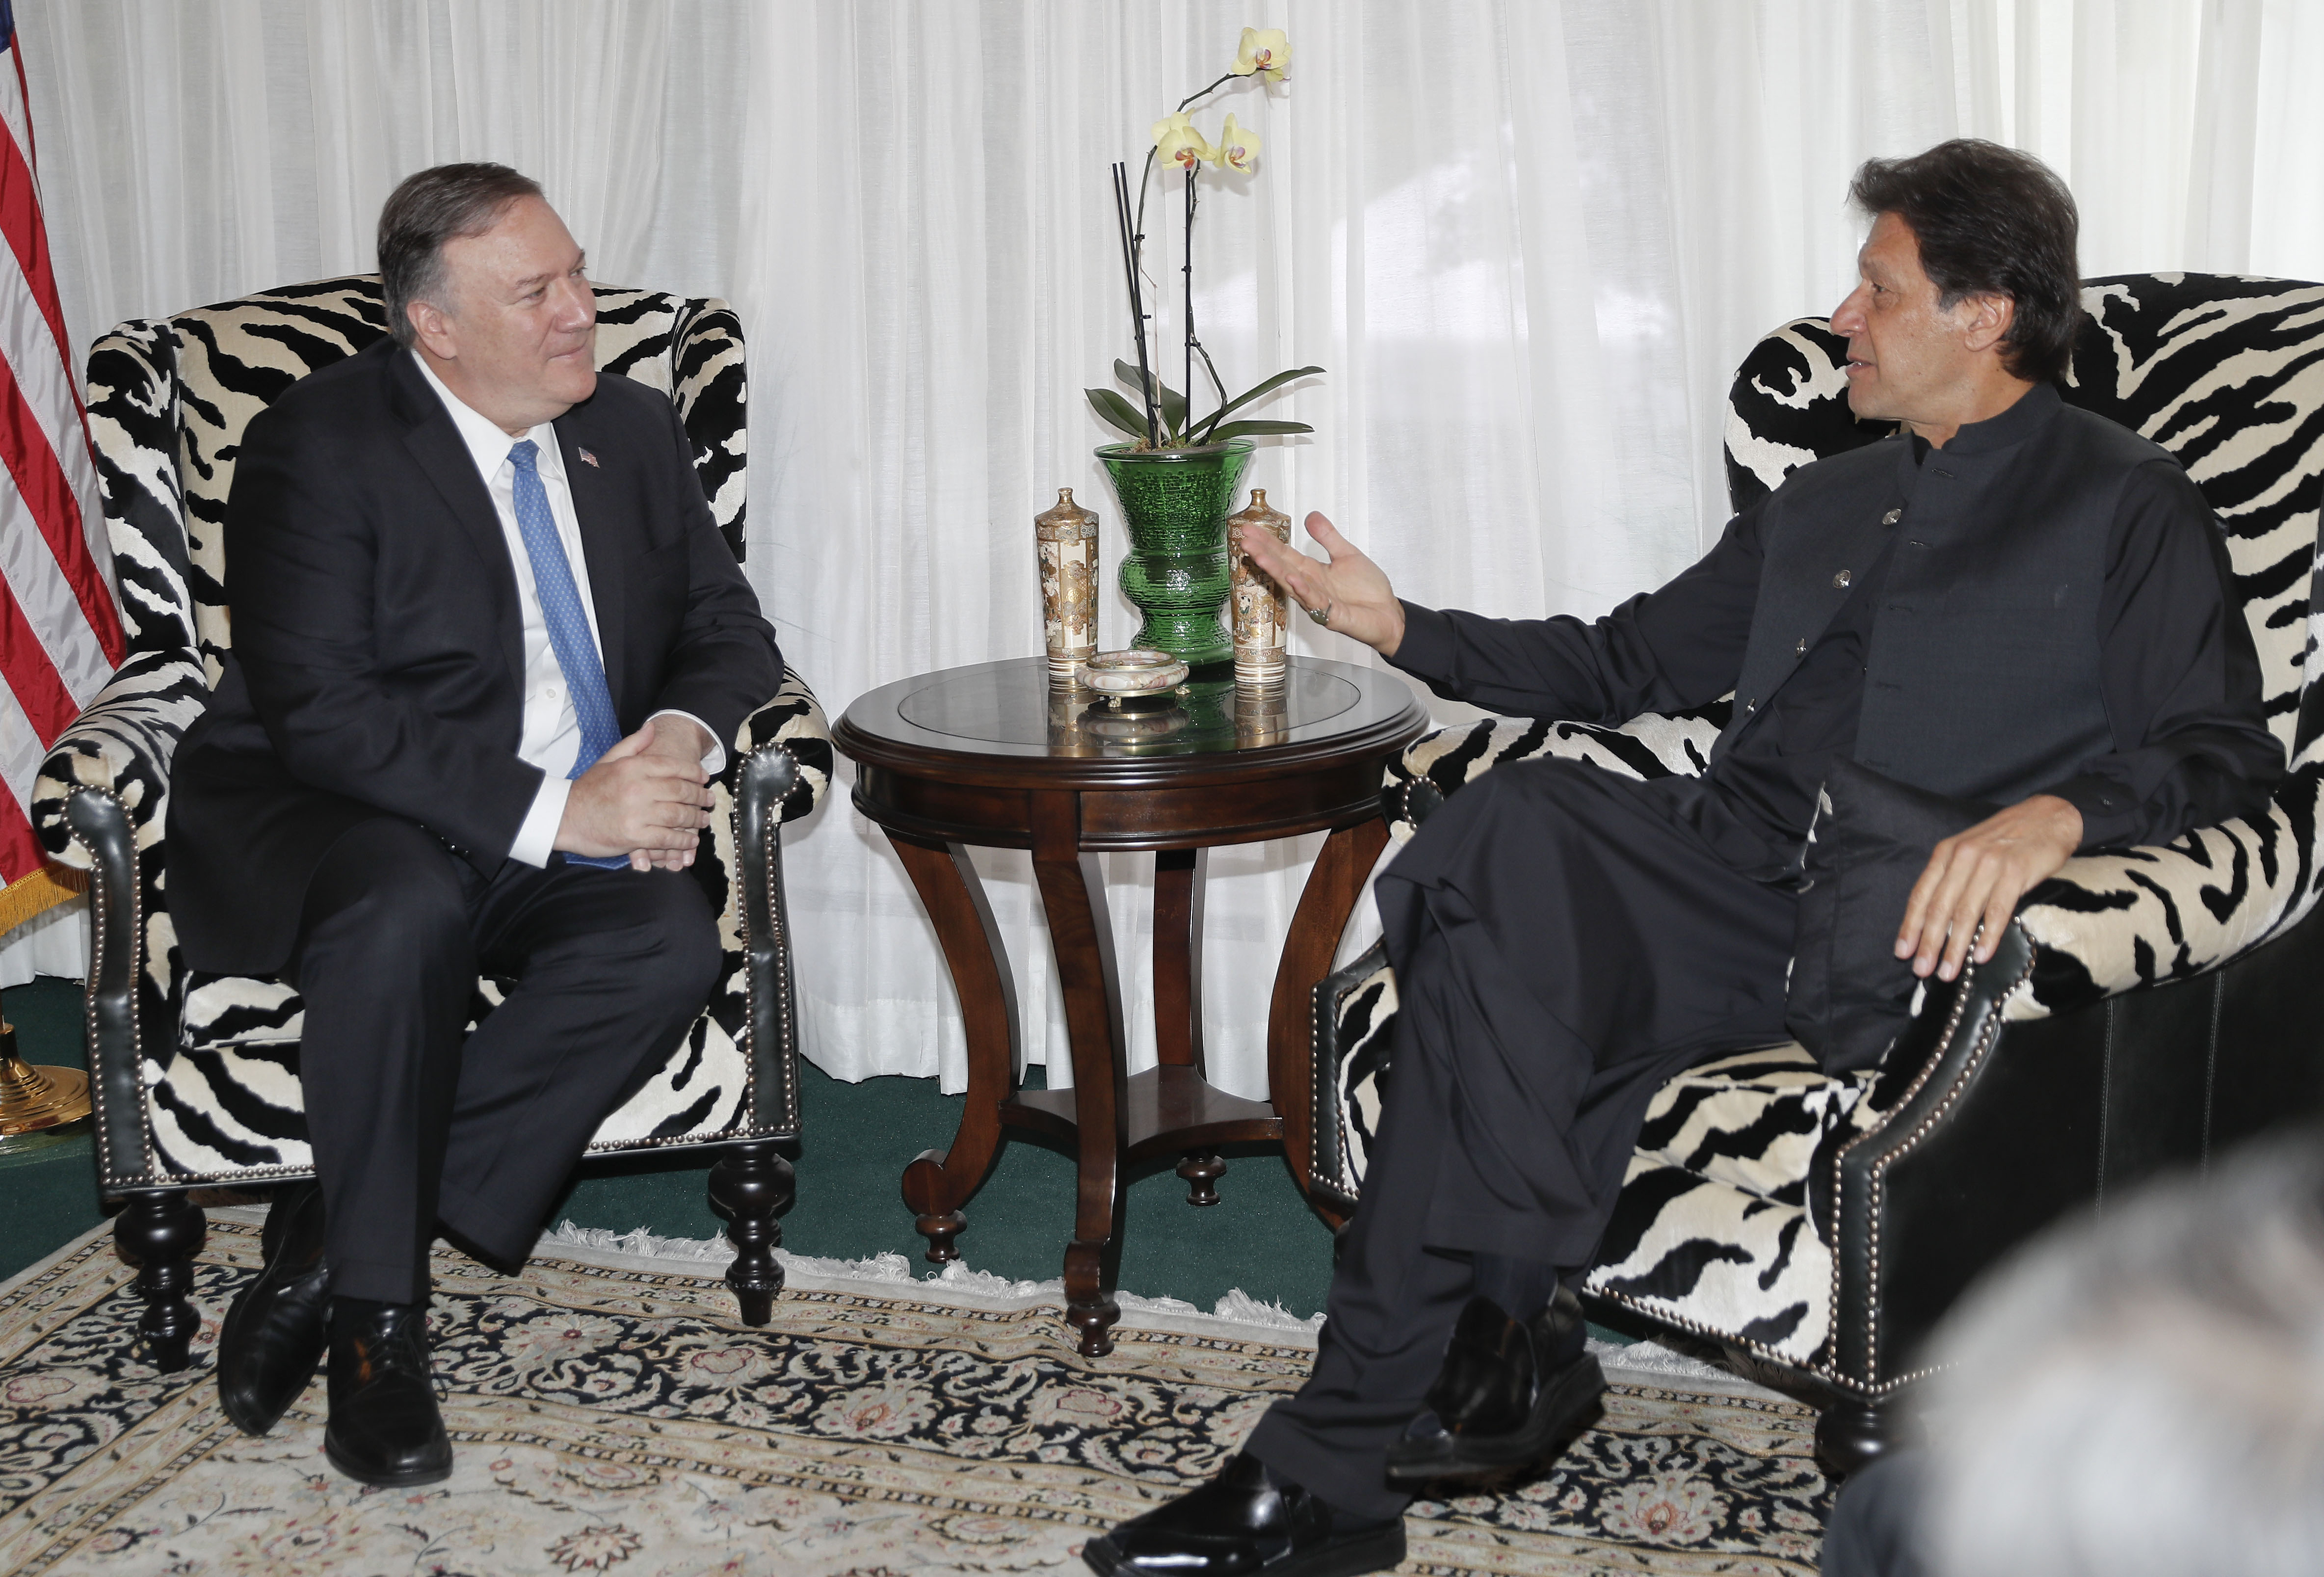 Pakistan PM says hell work with US on Afghanistan accord